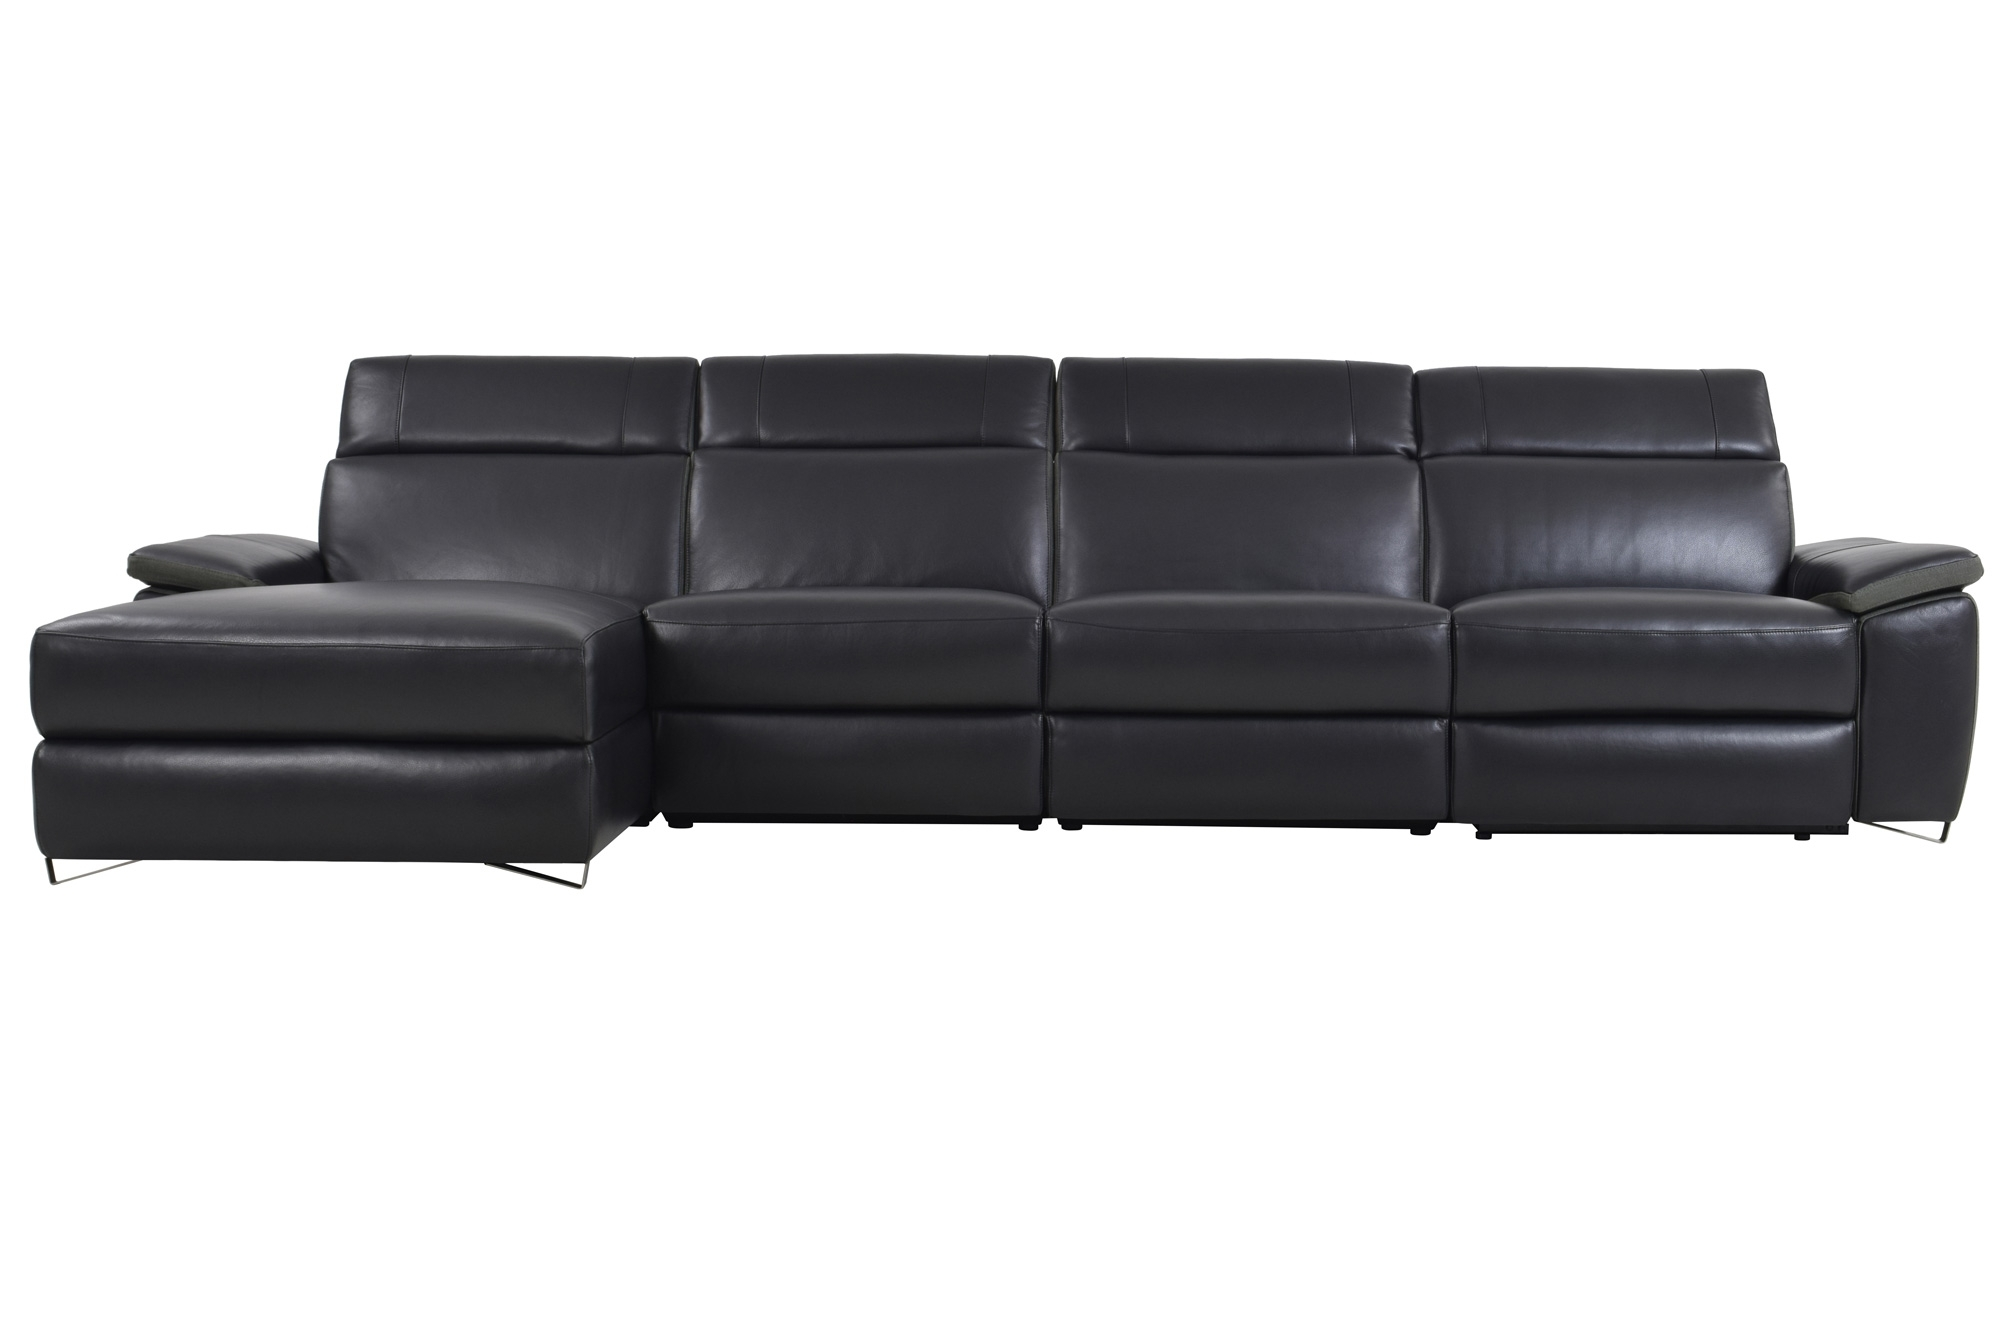 Mobilia Sectional Sofas With Regard To 2017 Aura Black Top Grain Leather Power Reclining Large Sectional Sofa (View 7 of 15)